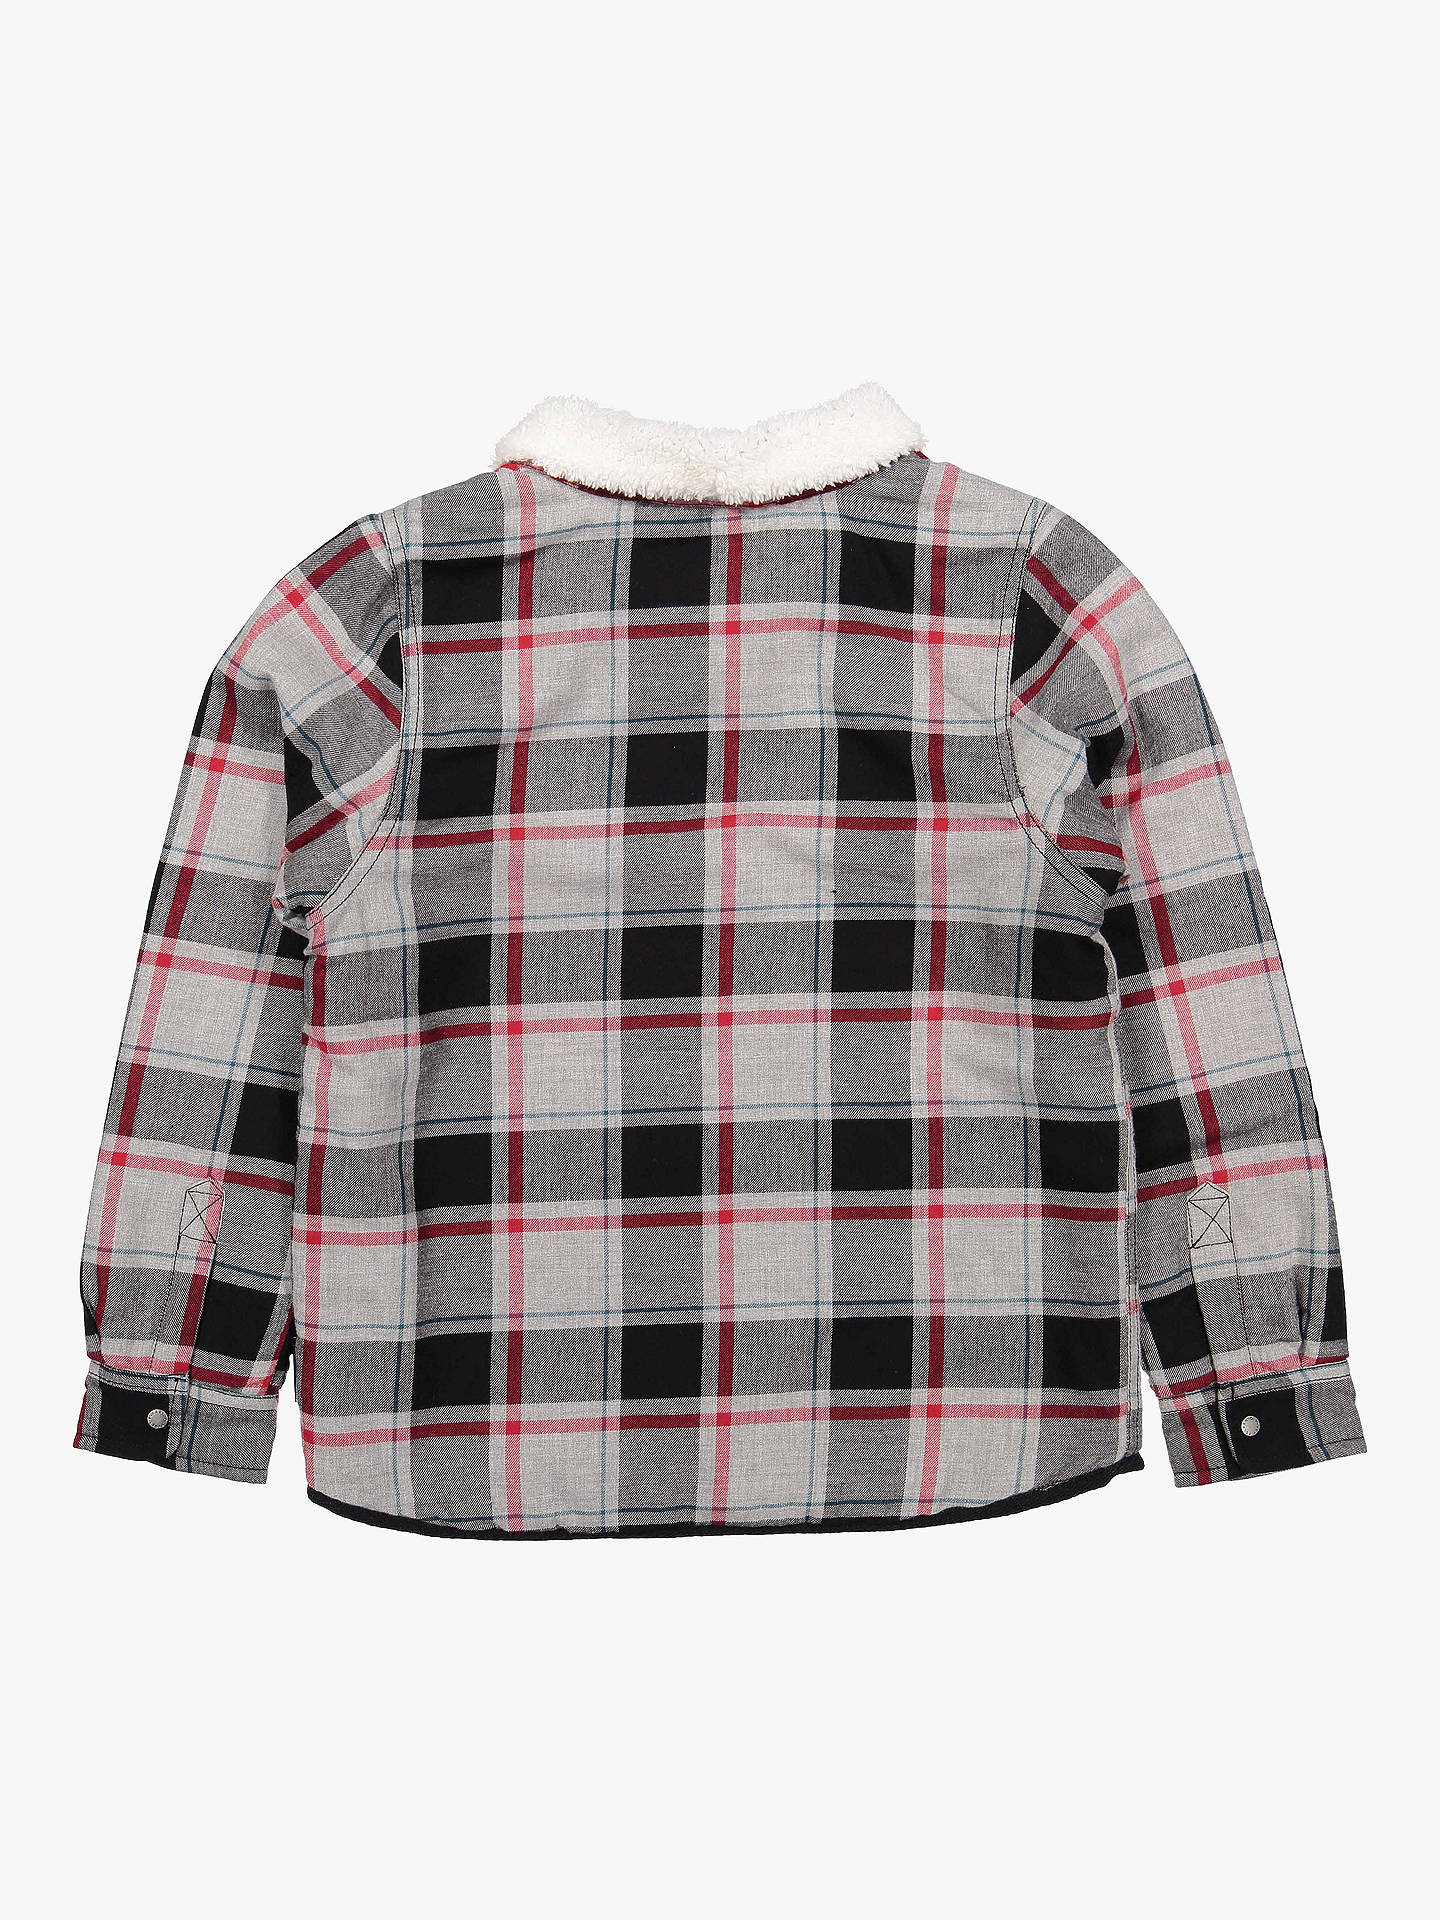 Buy Polarn O. Pyret Children's Fleece Collar Check Shirt, Grey, 4-5 years Online at johnlewis.com